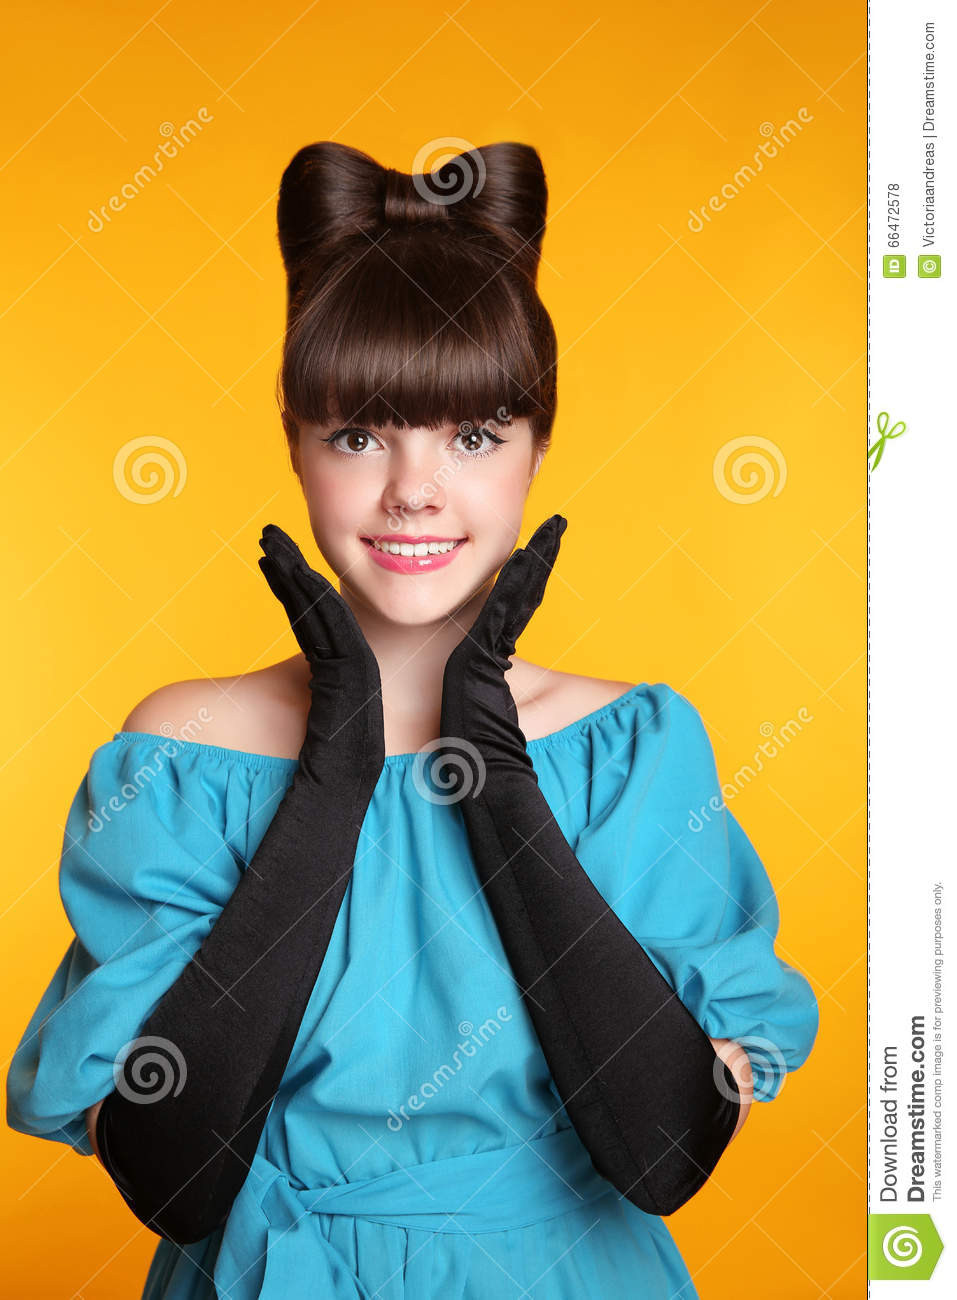 Pretty funny smiling girl beauty portrait. Elegant Fashion Glamorous teen Model wearing black Glamour Gloves. Bow Hairstyle and M